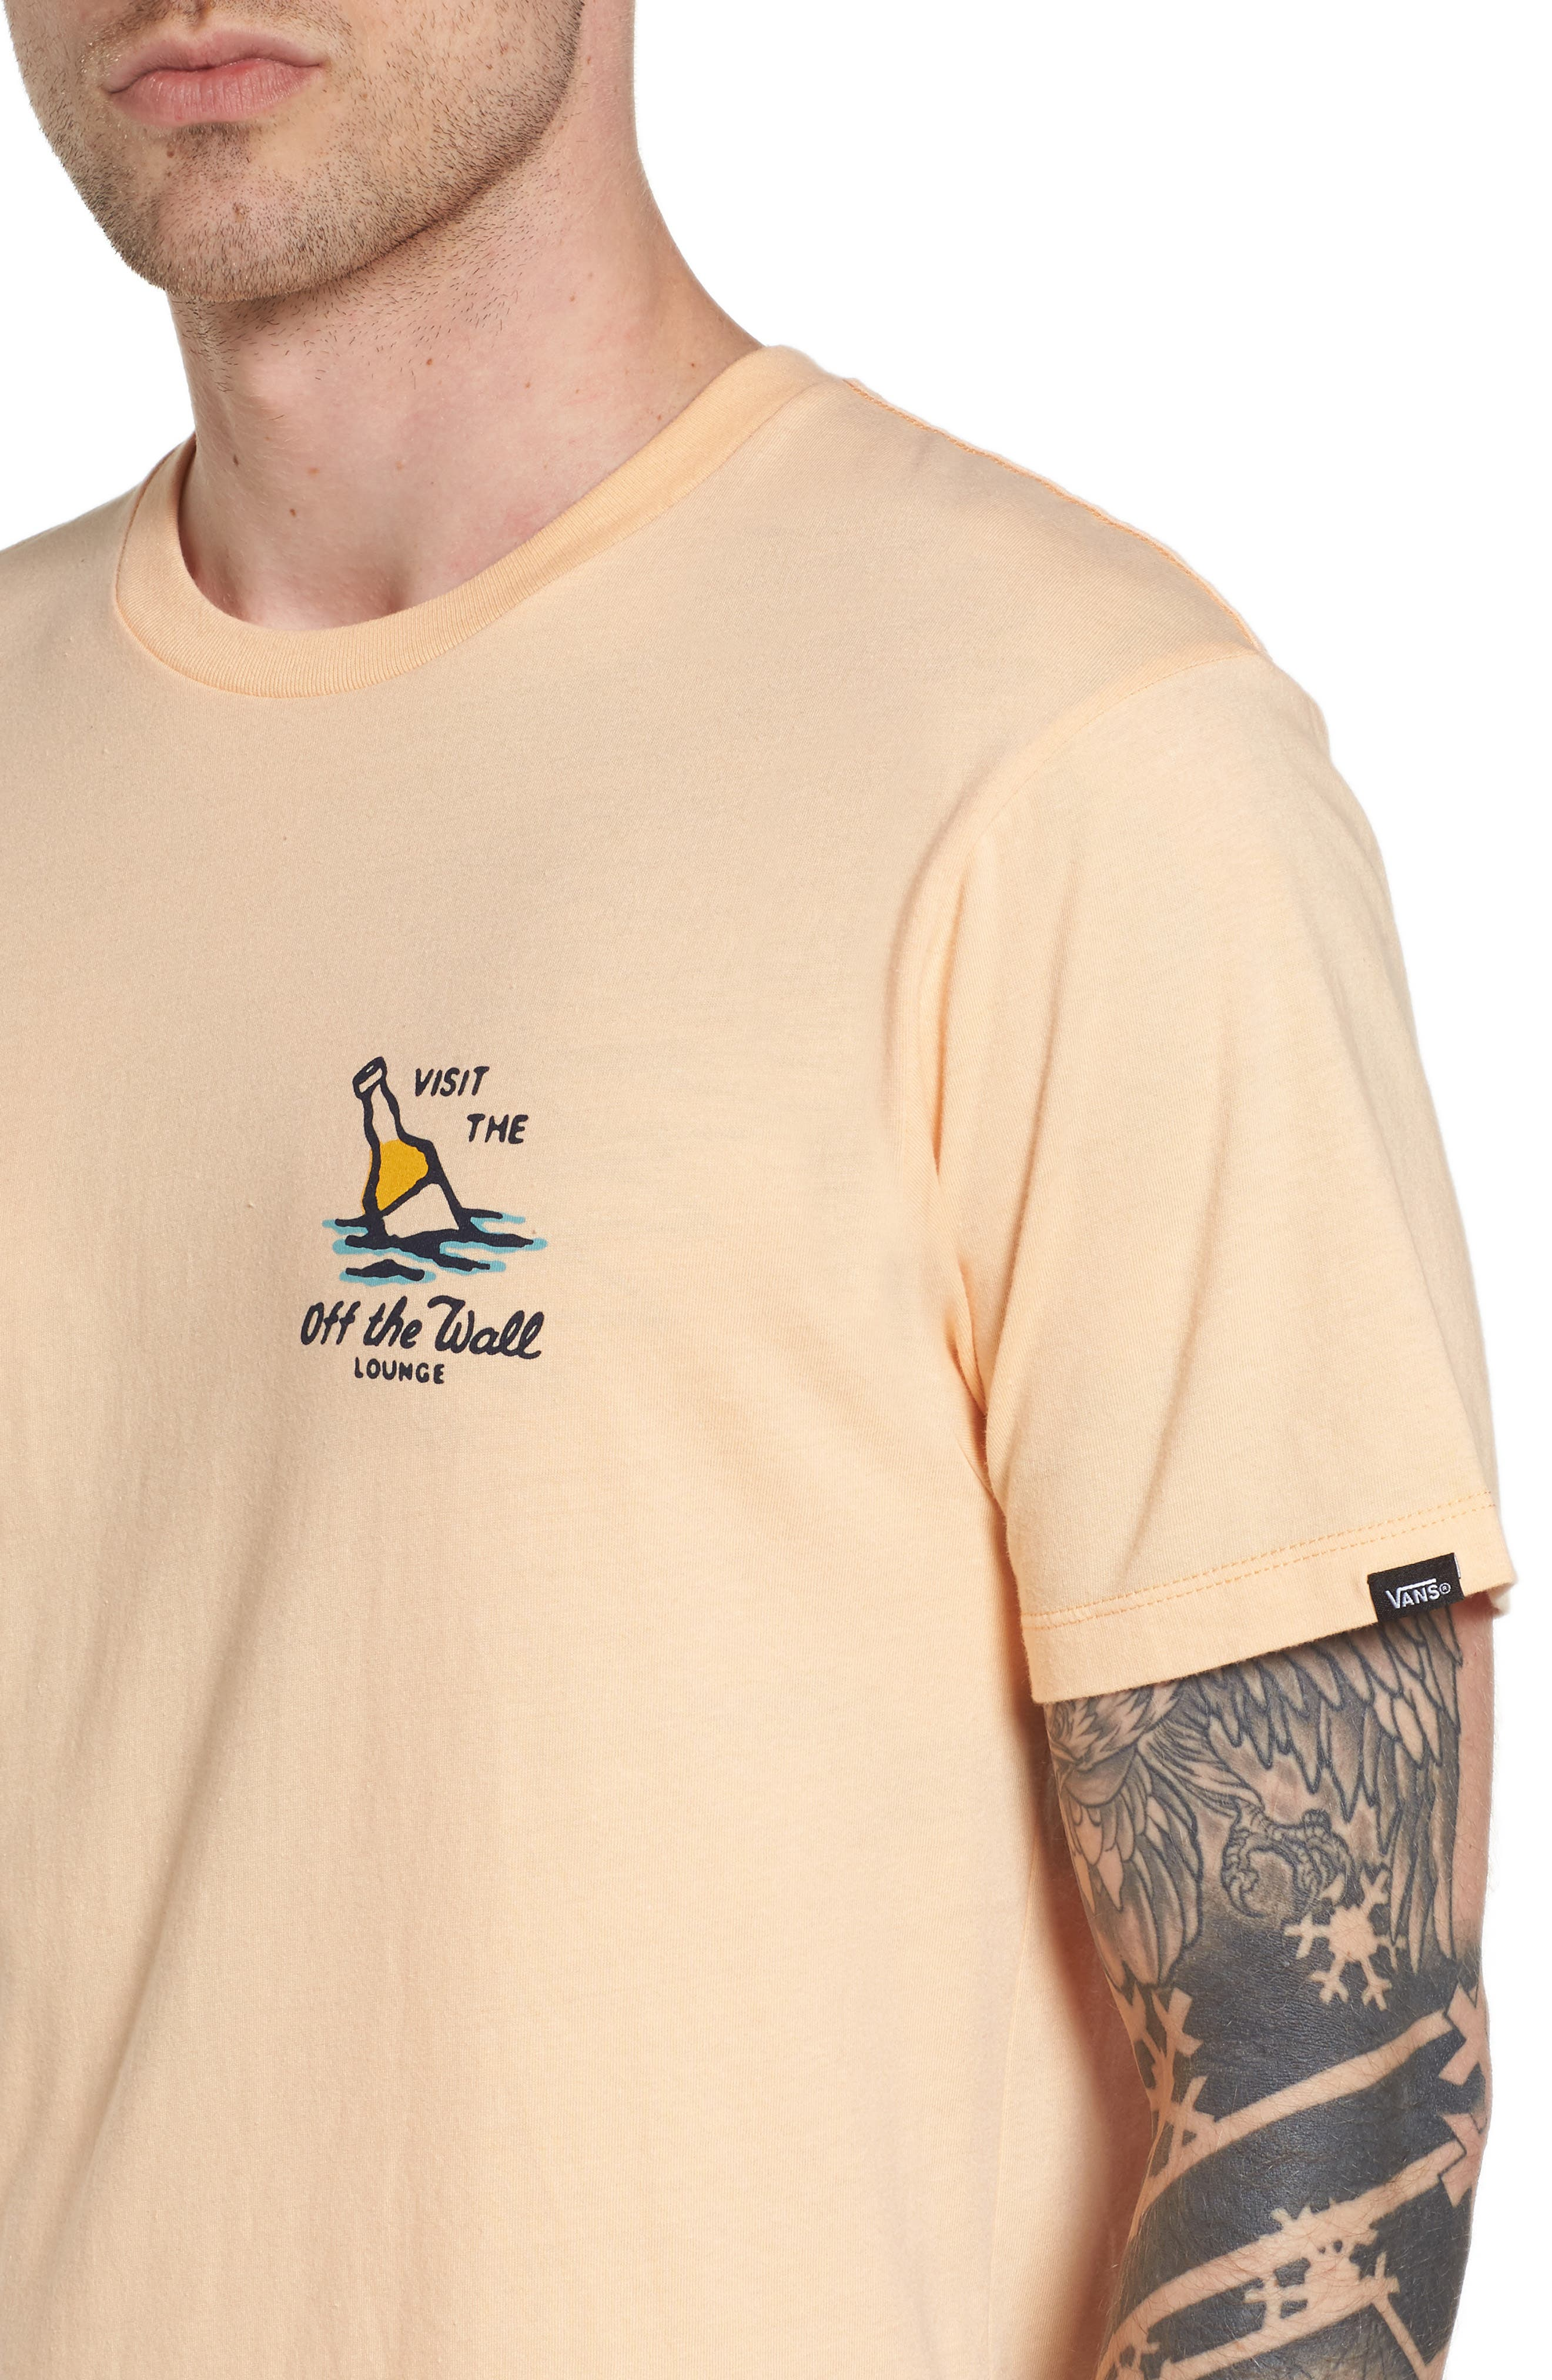 Off the Wall Lounge T-Shirt,                             Alternate thumbnail 4, color,